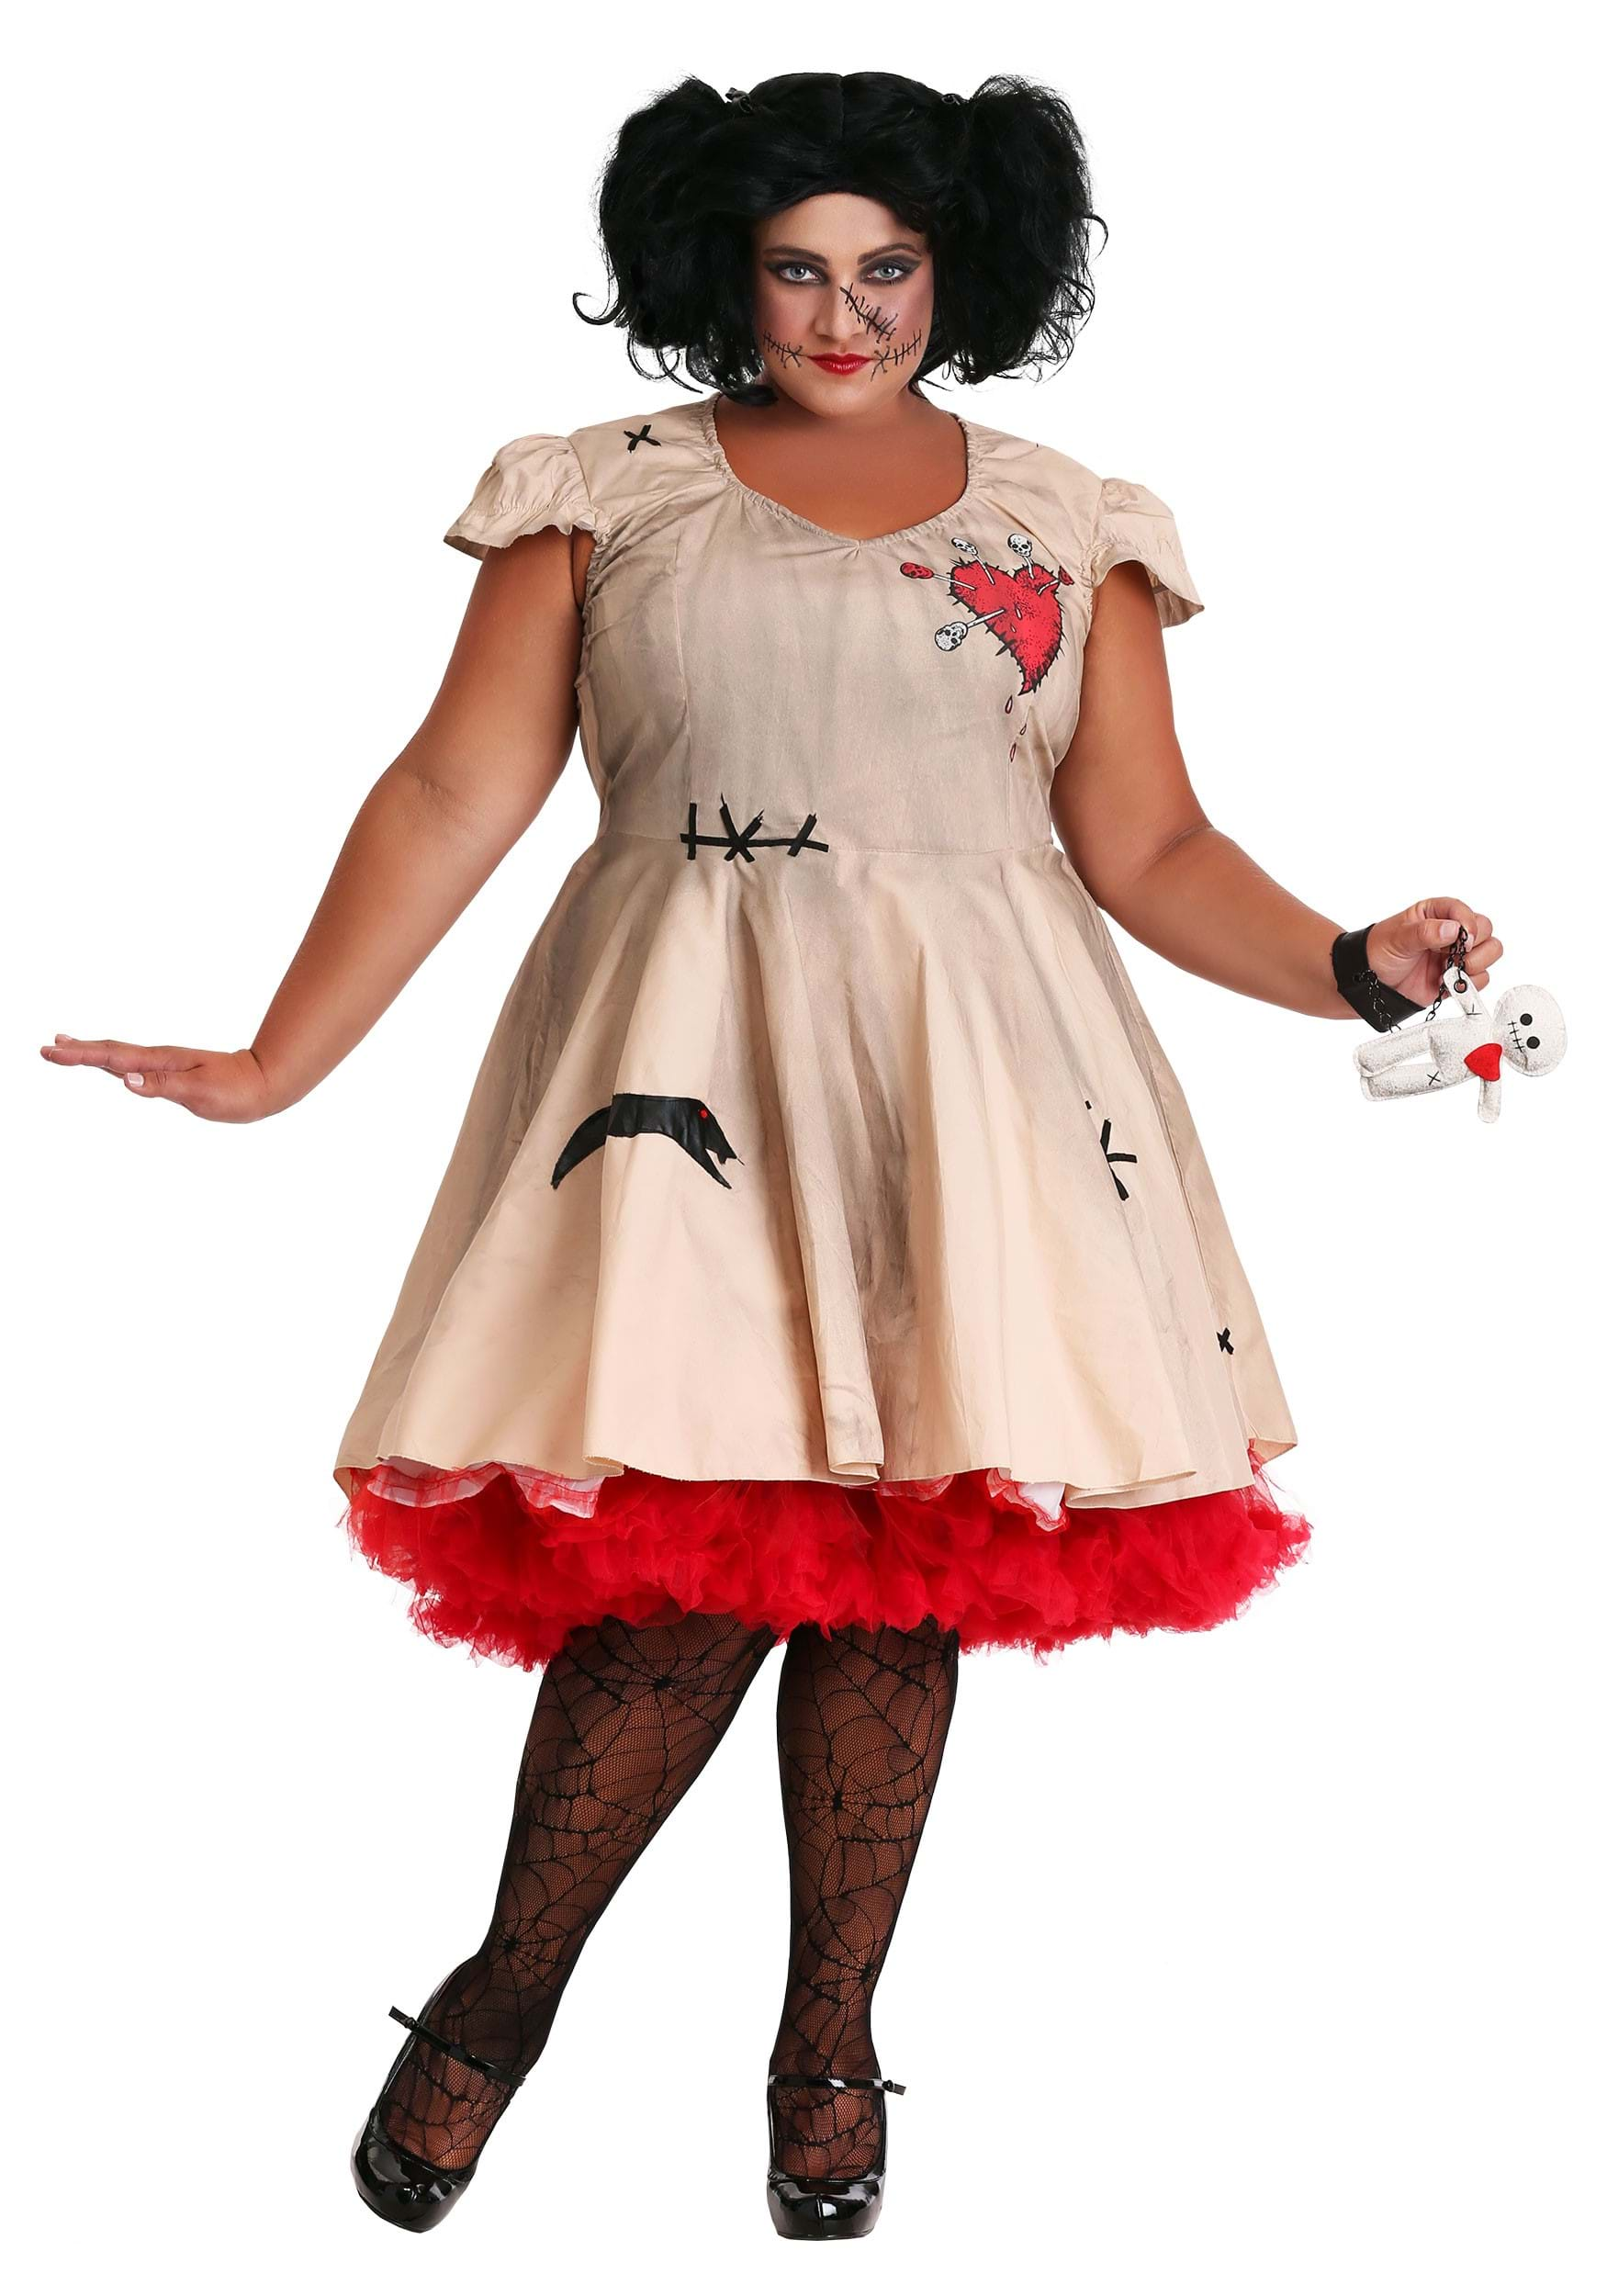 6e766bfb0e2da Womenu0027s Plus Size Voodoo Doll Costume Sc 1 St Halloween Costumes UK